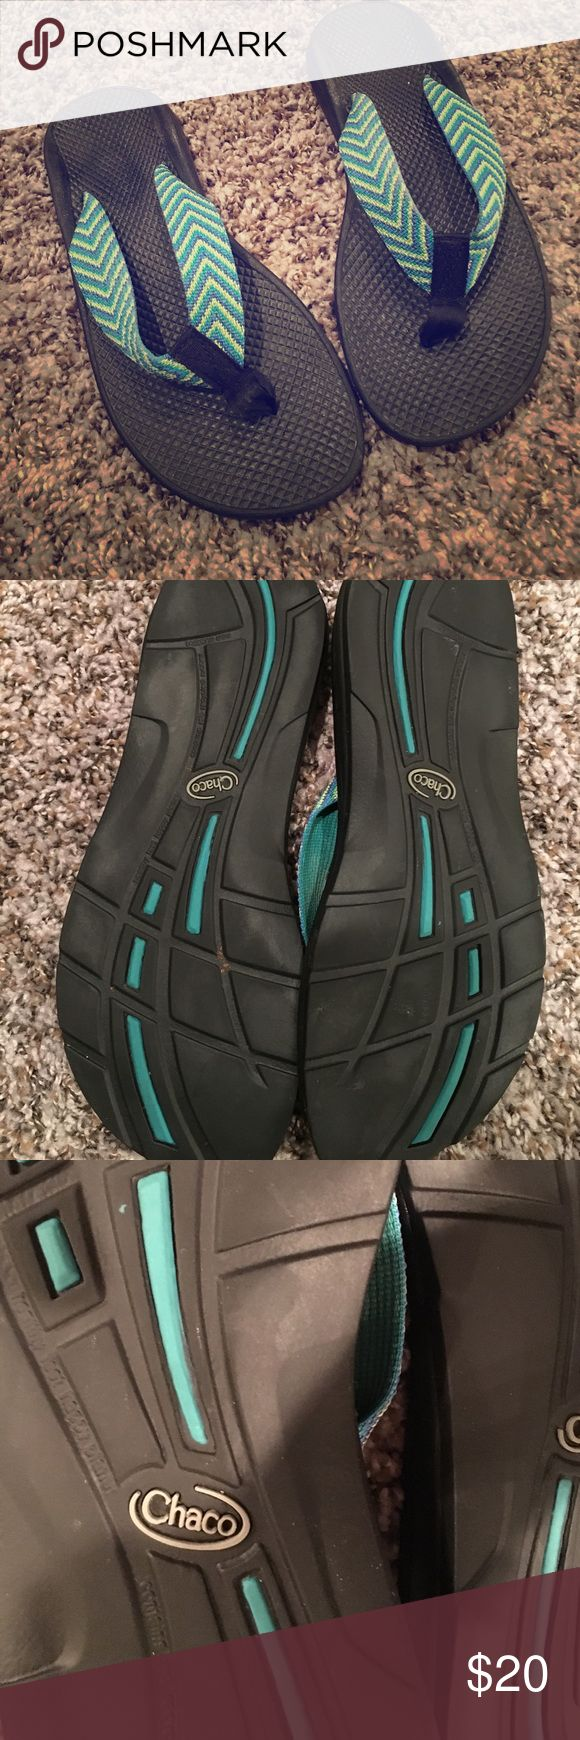 Chaco Flip Flops Chaco Flip Flops - Super Comfortable! Arch support! Blue, green and yellow. Rare!! Chaco Shoes Sandals